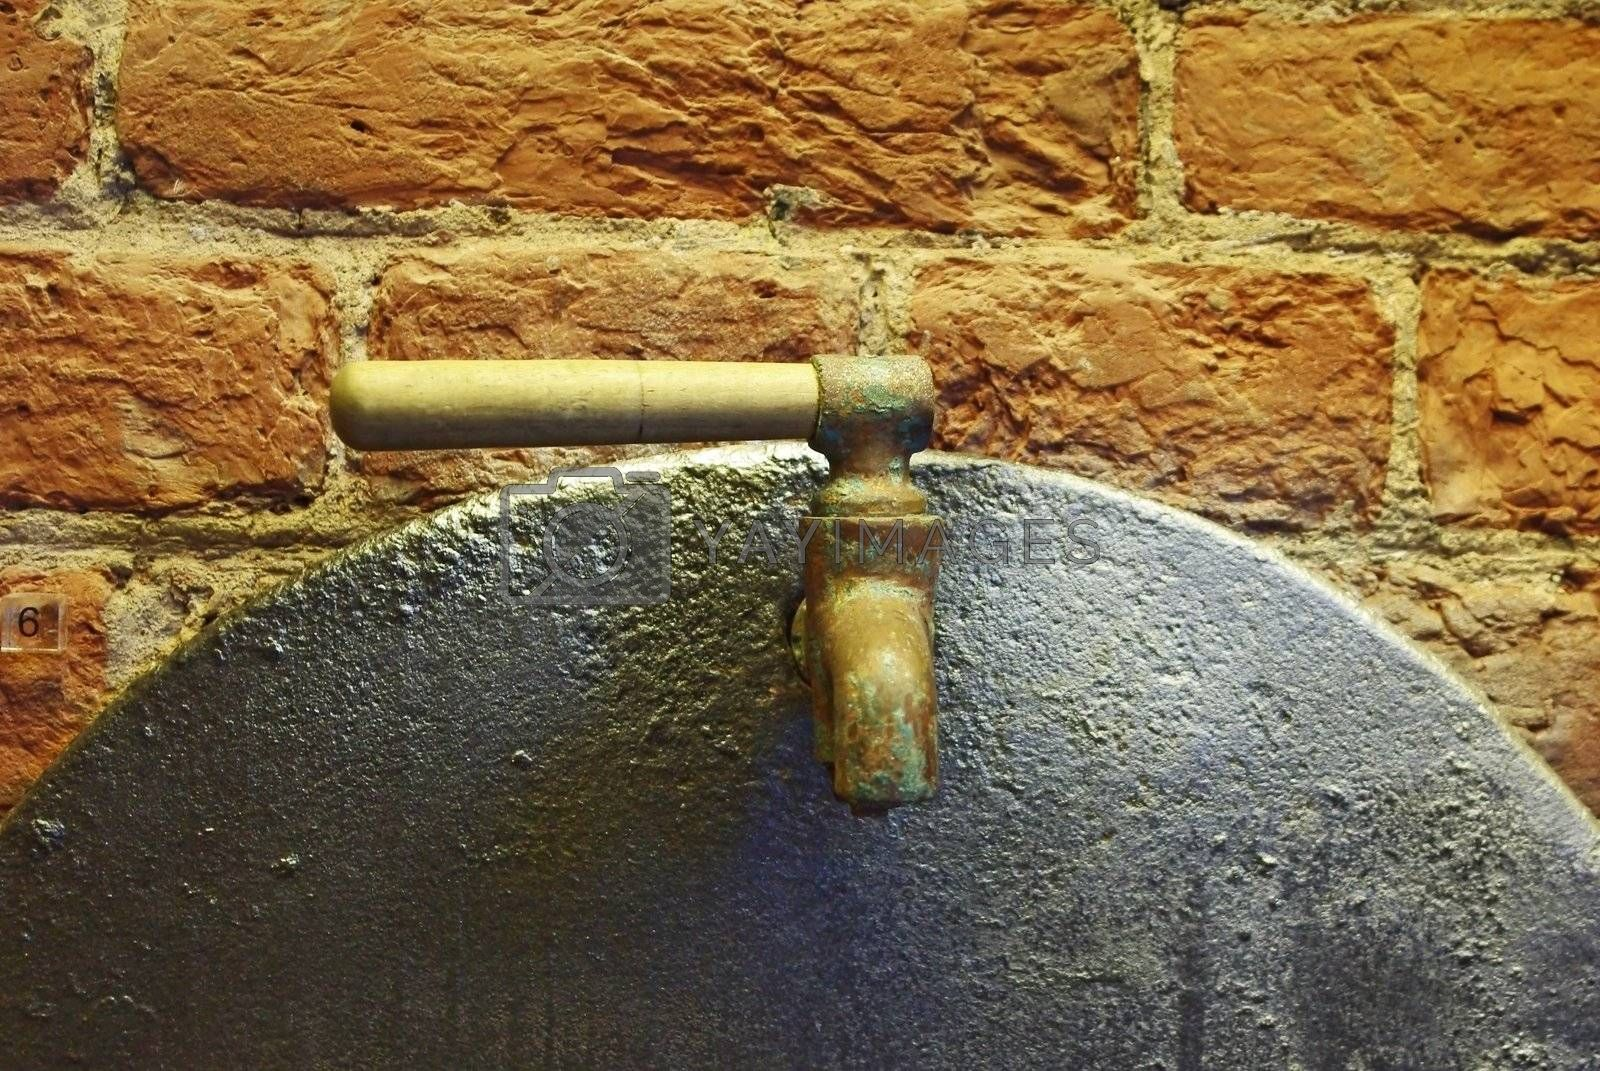 Close up of old water tap over brick wall